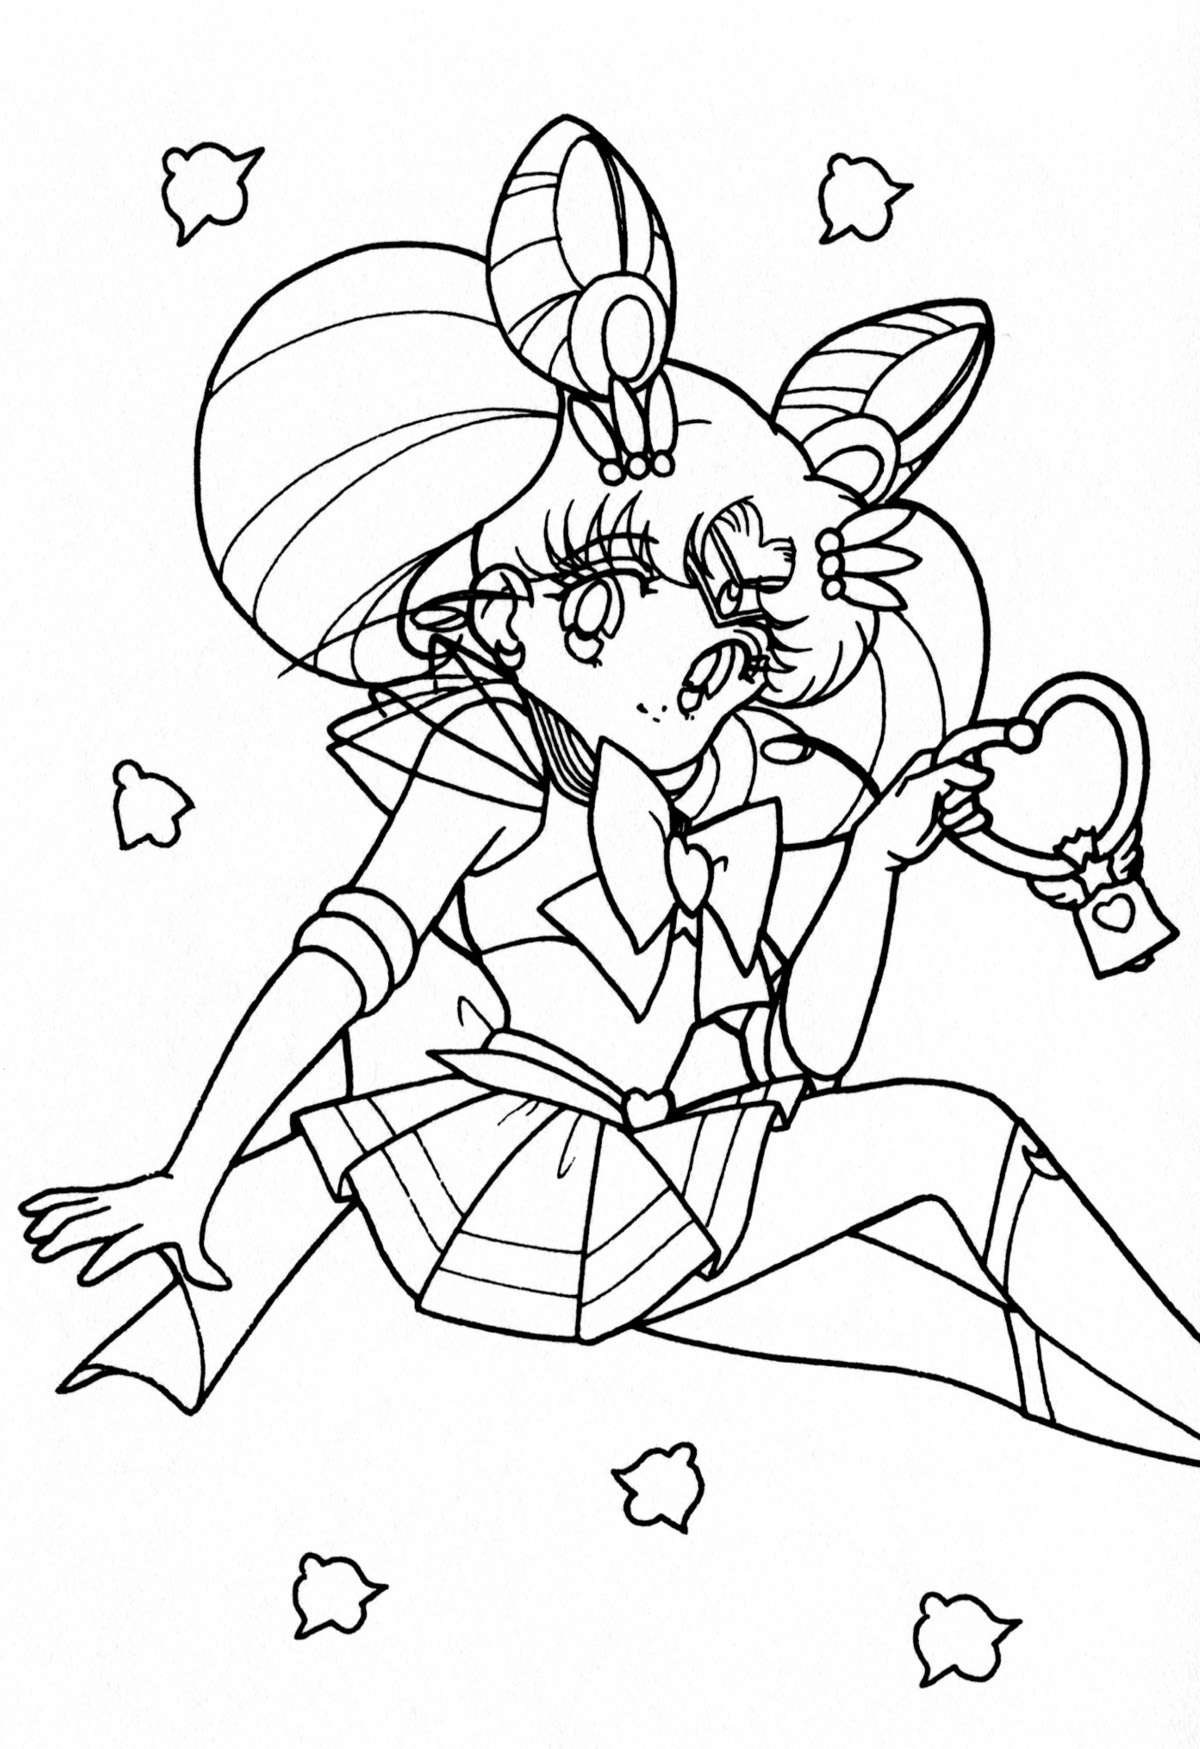 chibi moon coloring pages - photo#2